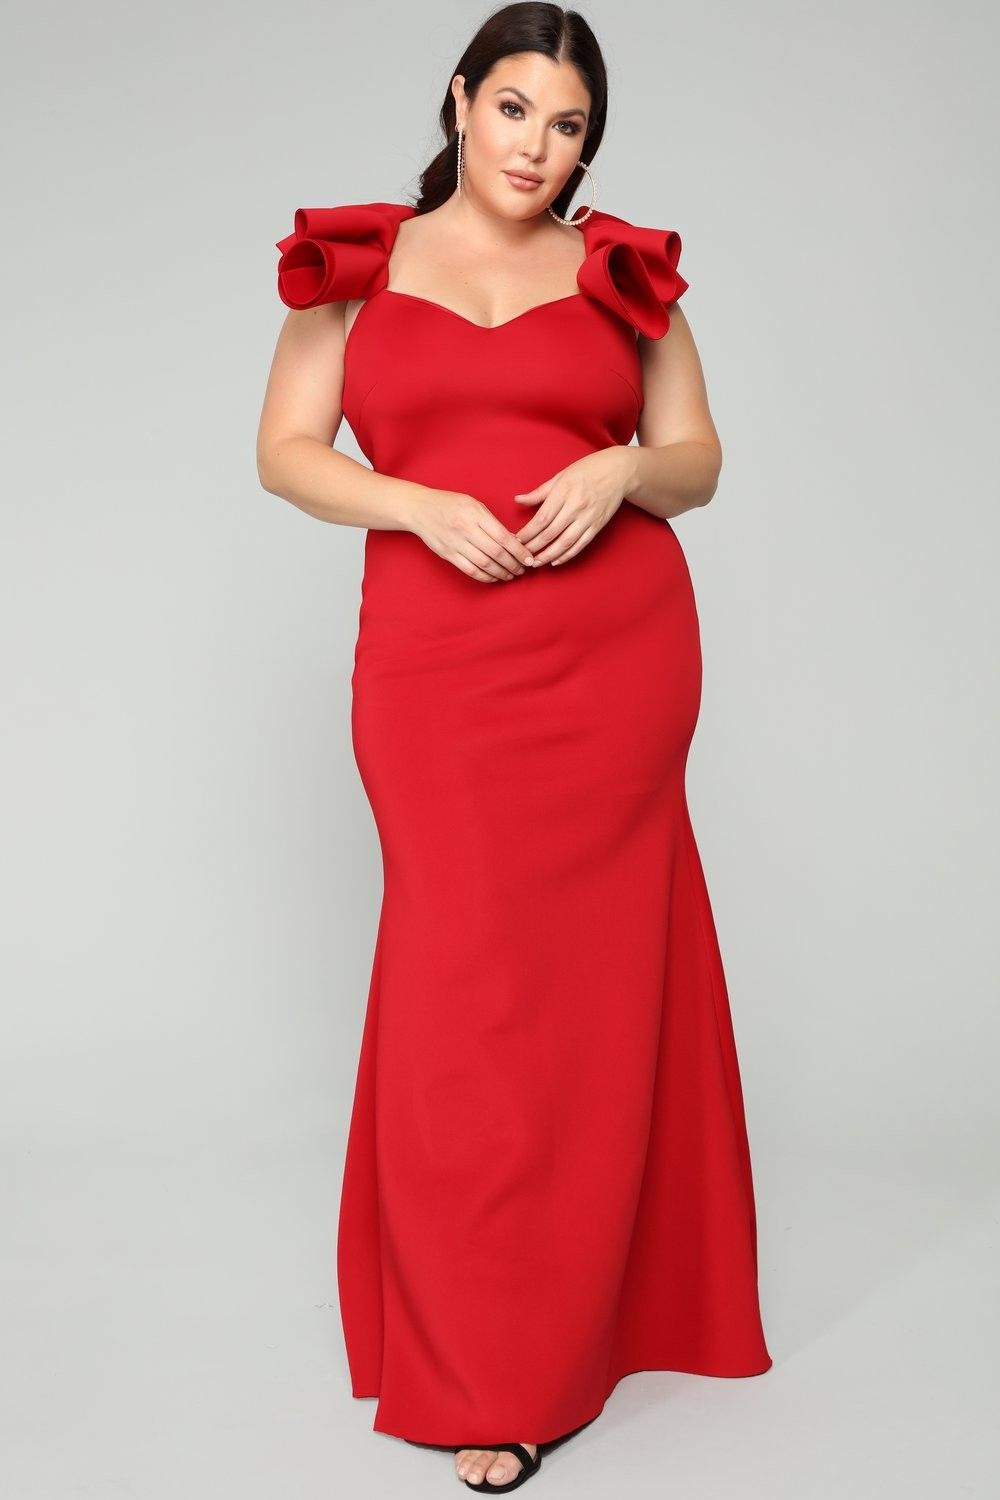 plus size salty babe mermaid dress - red $69.99 #fashion #ootd